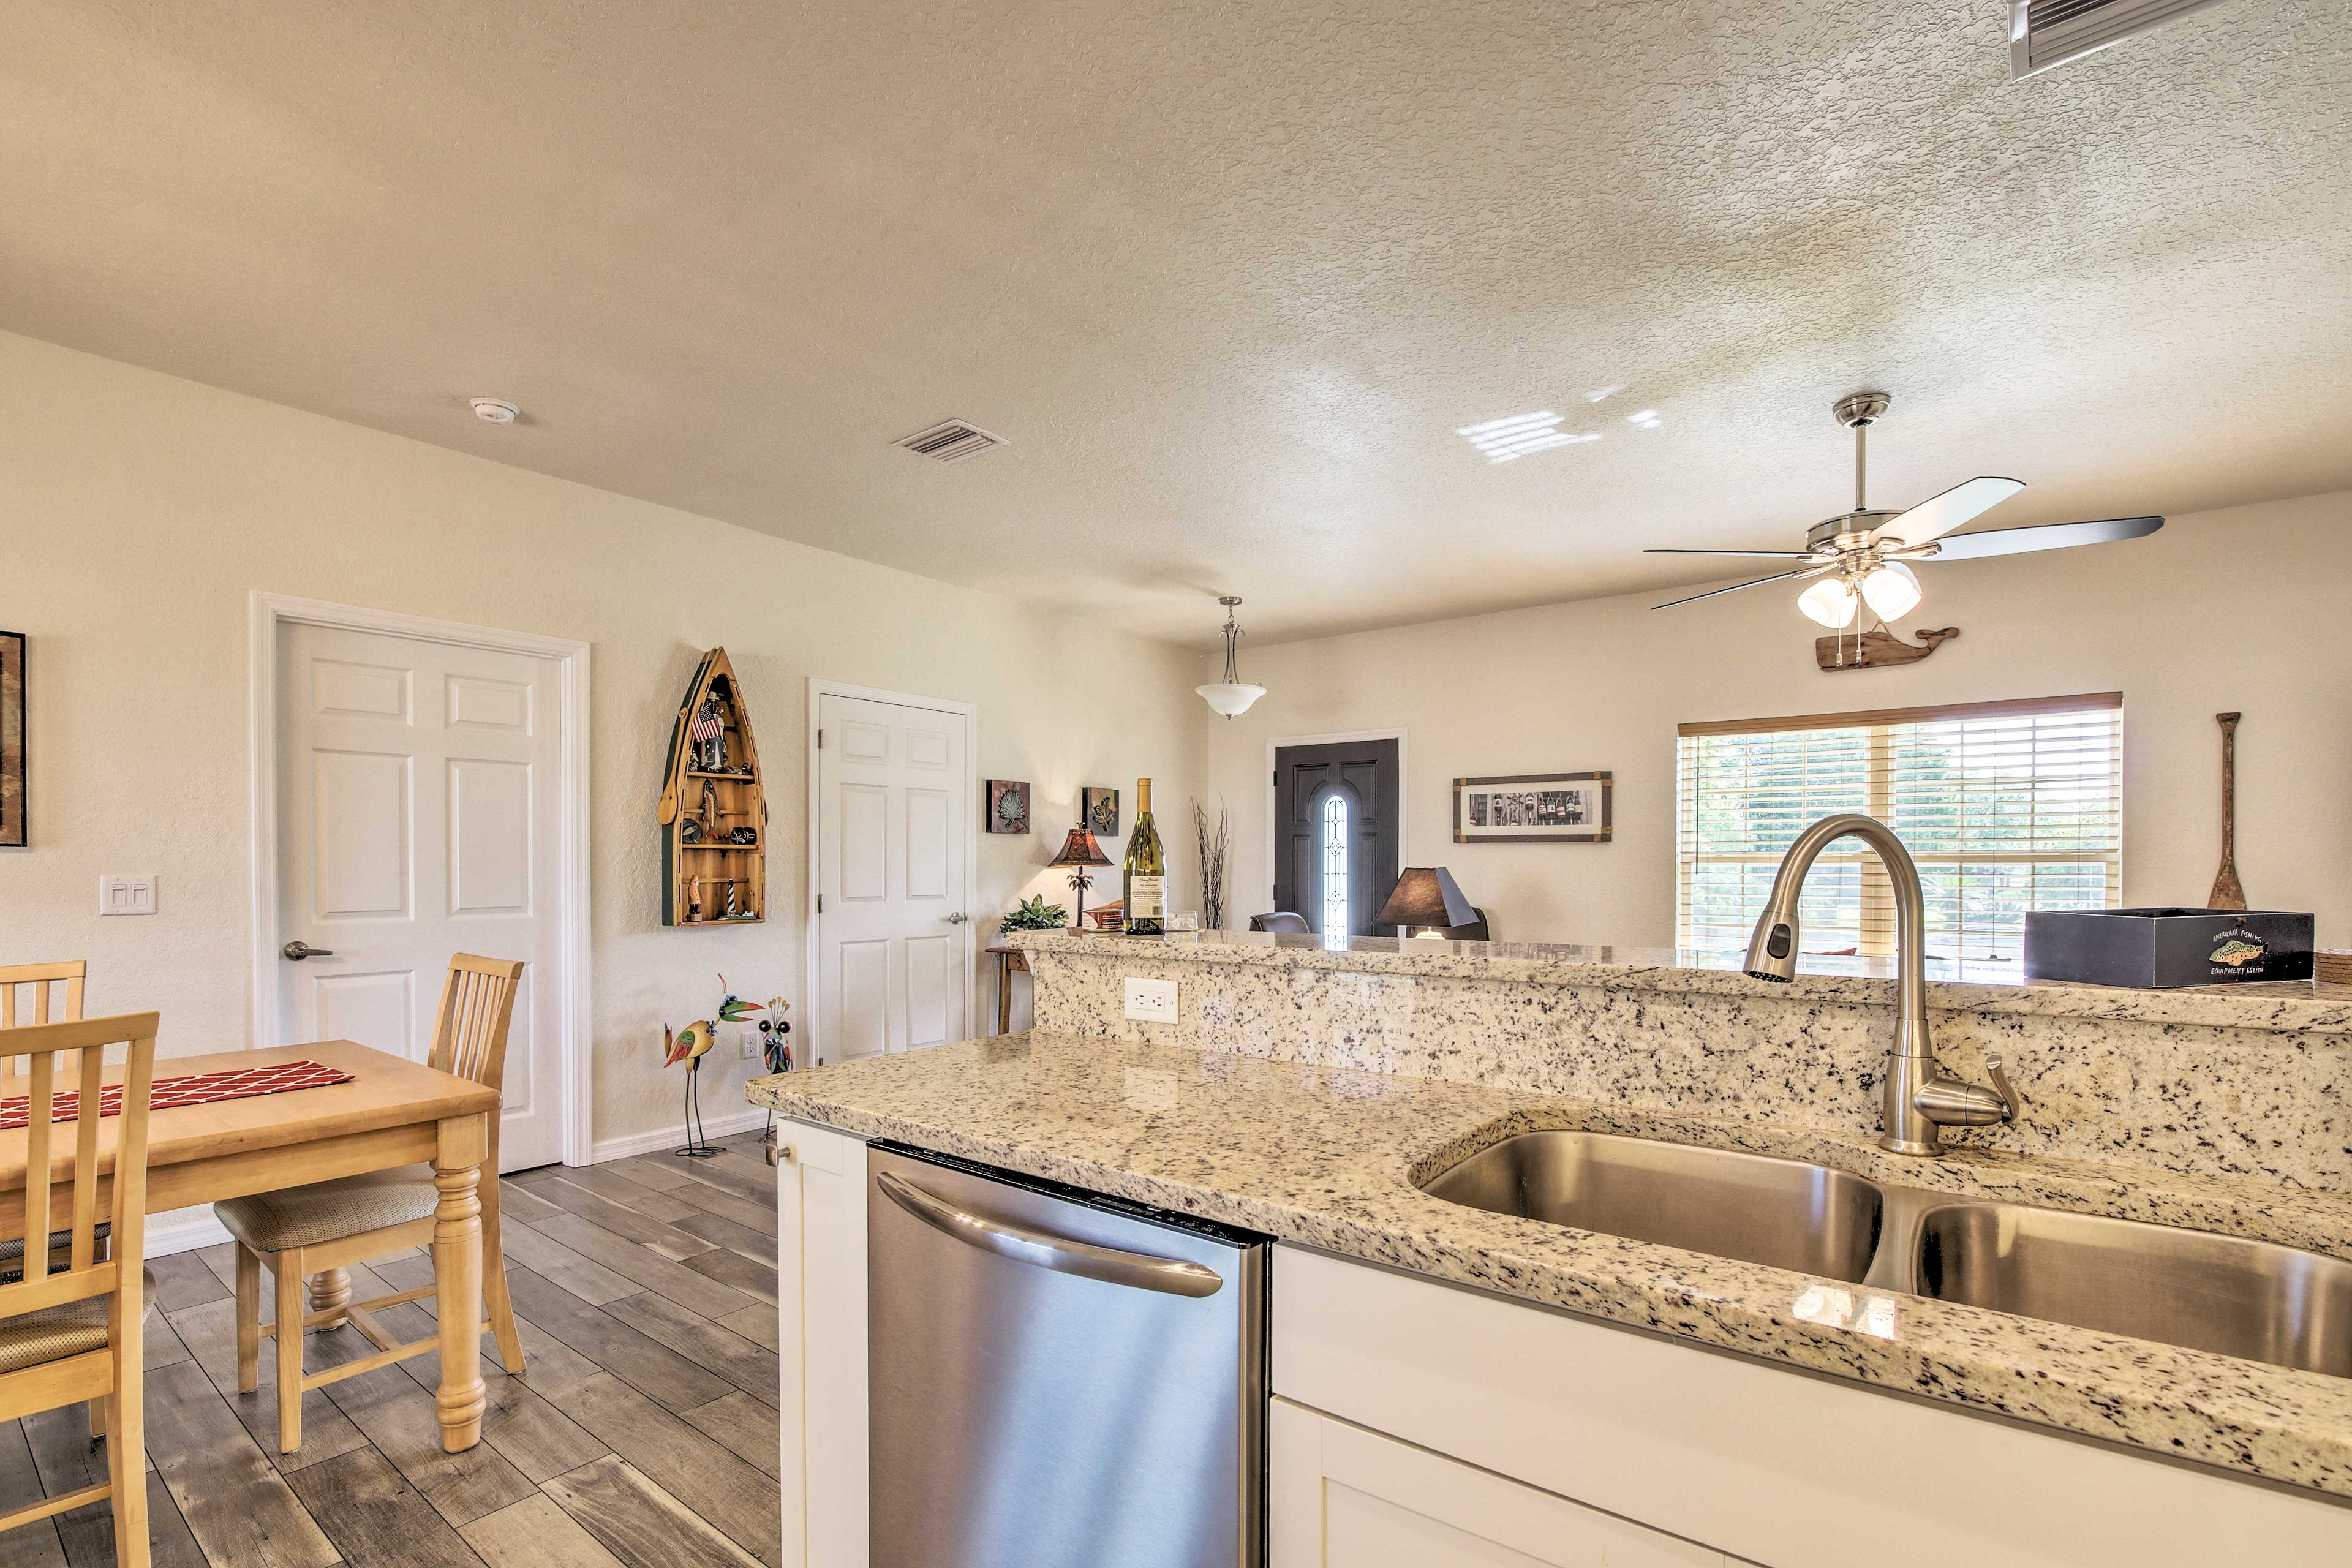 Cooking will be a breeze in this fully equipped kitchen!